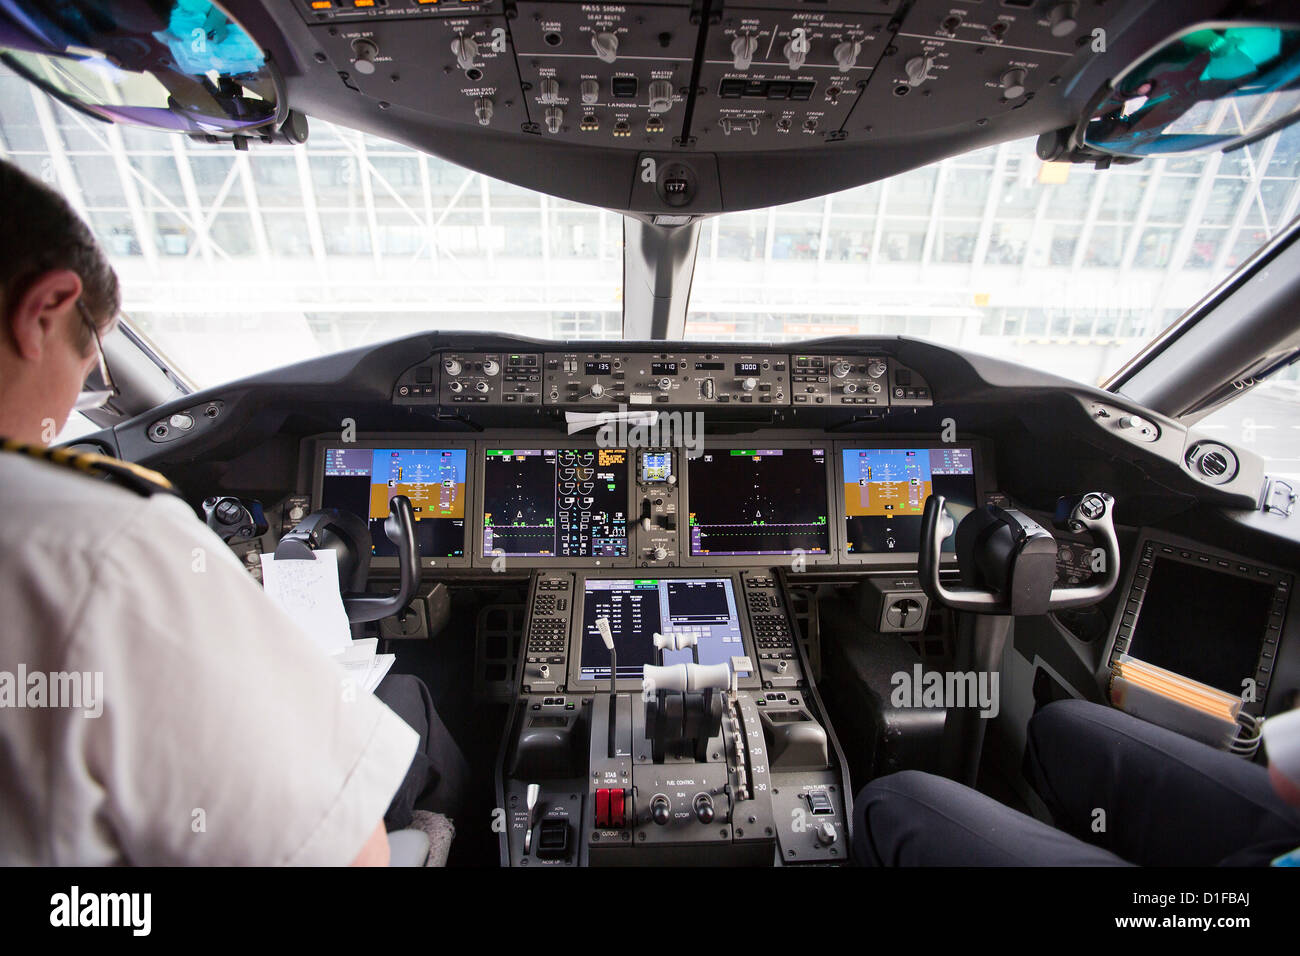 Interieur, Boeing 787 Dreamliner Stockfoto, Bild: 52583962 - Alamy